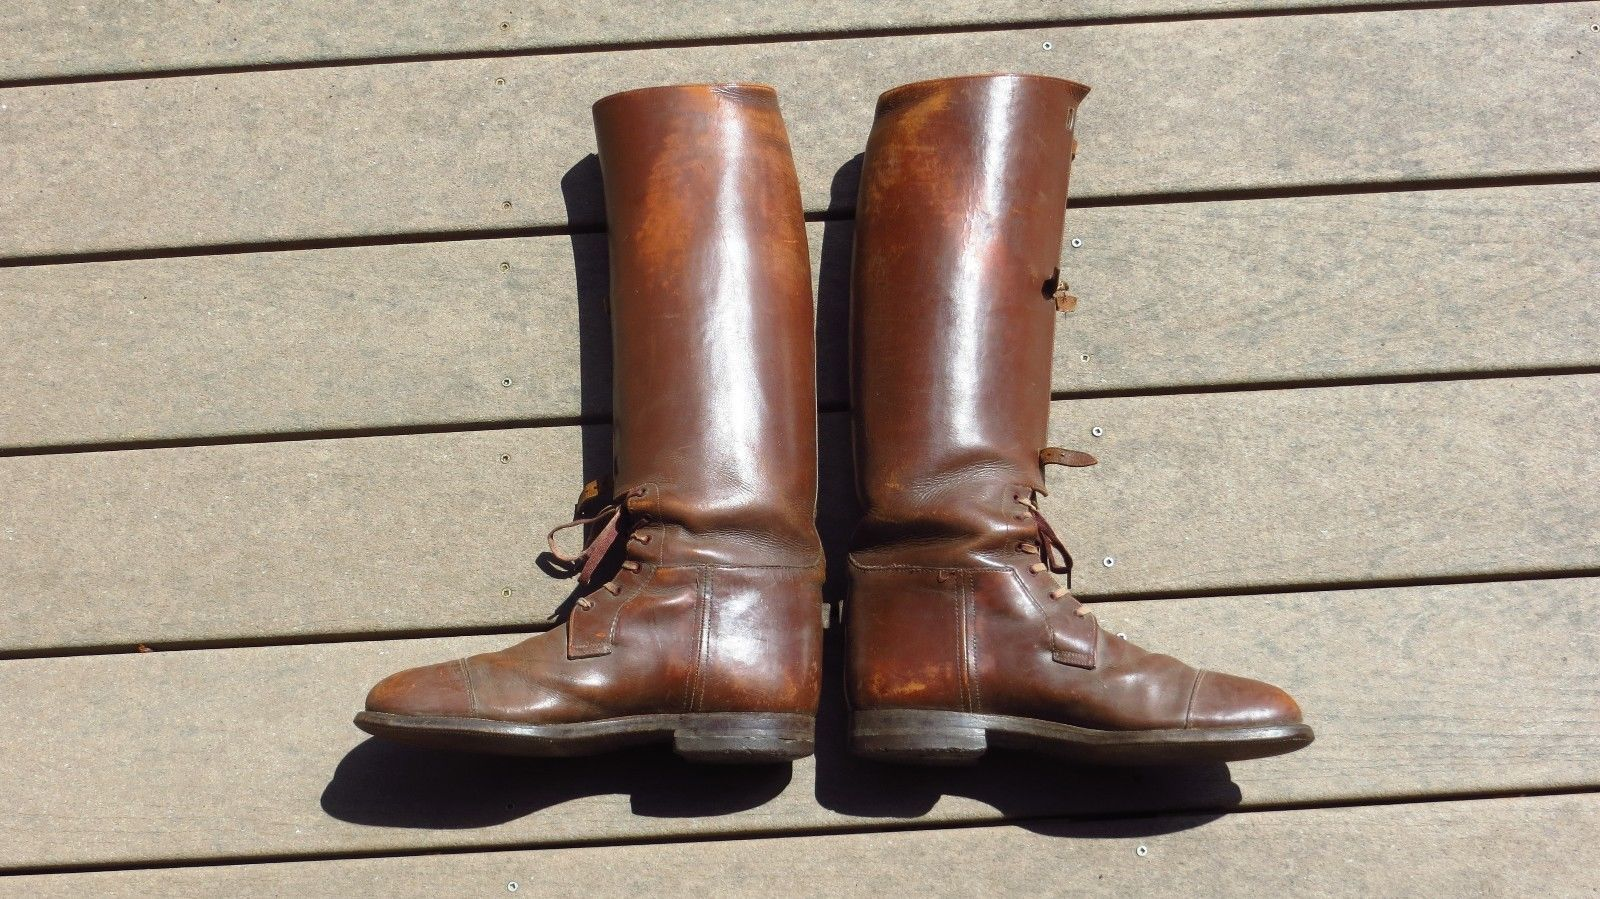 ebb44415727 Details about WW2 US Army Boots Men's 11 Cavalry Officer Riding ...